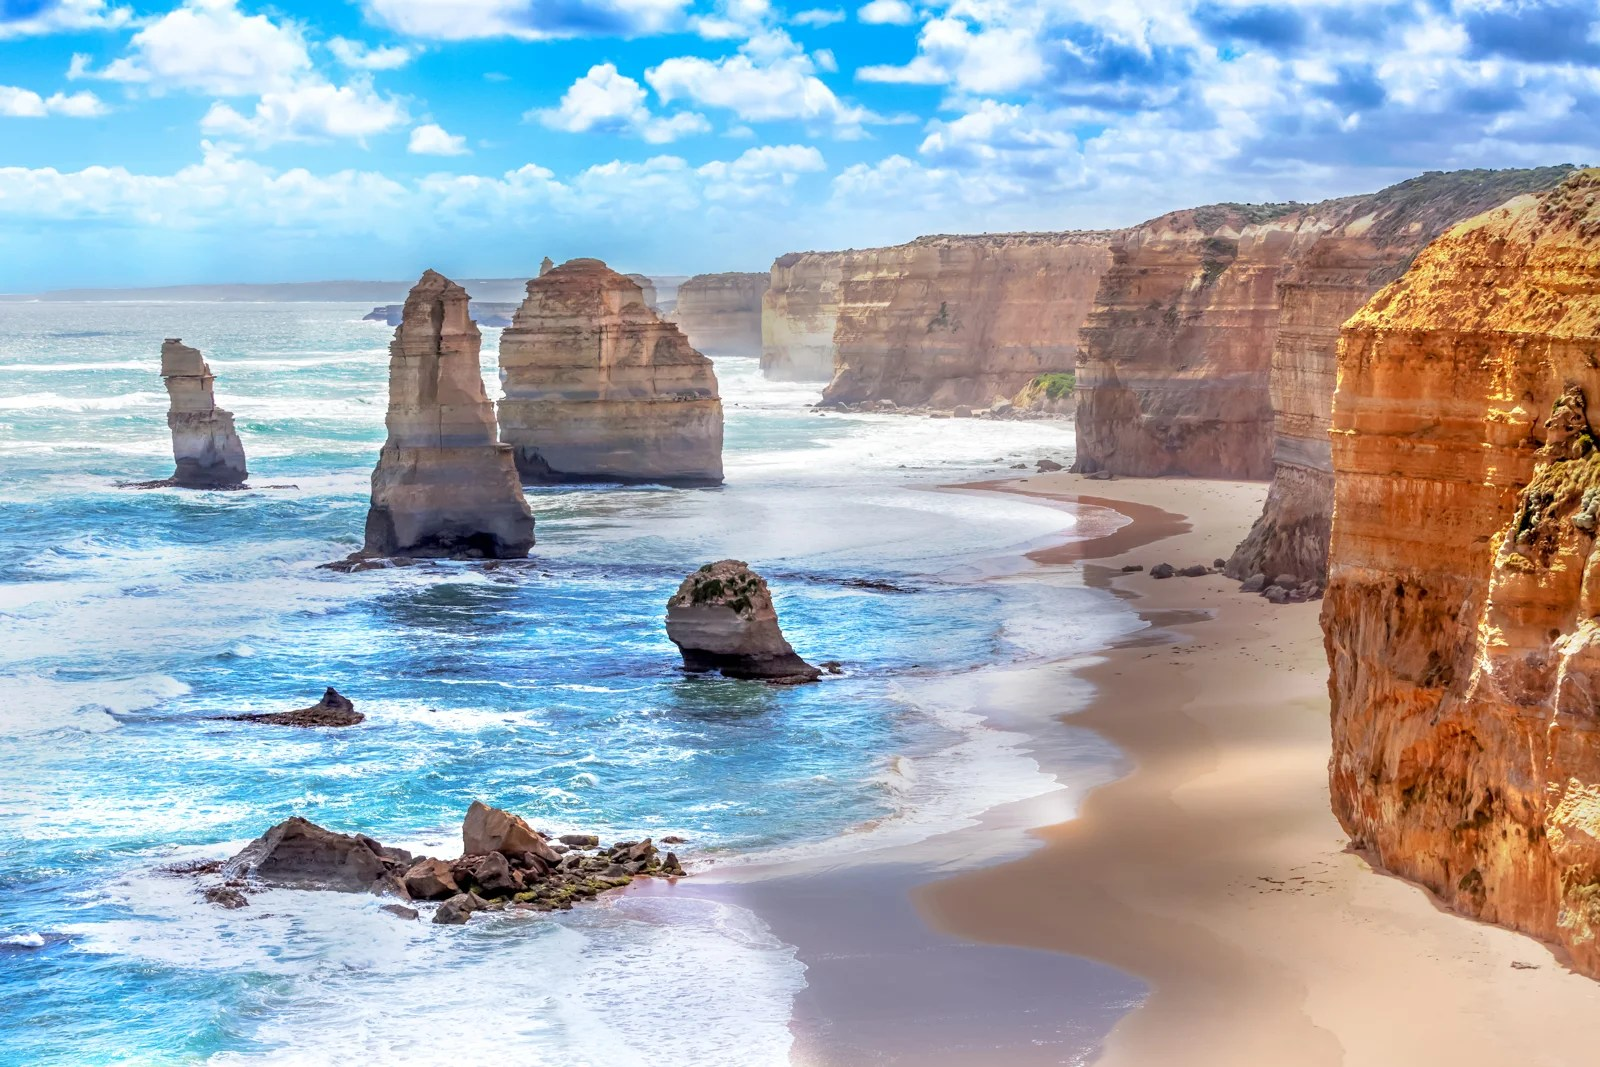 Why traveling to Australia could be the most effective way to help right now